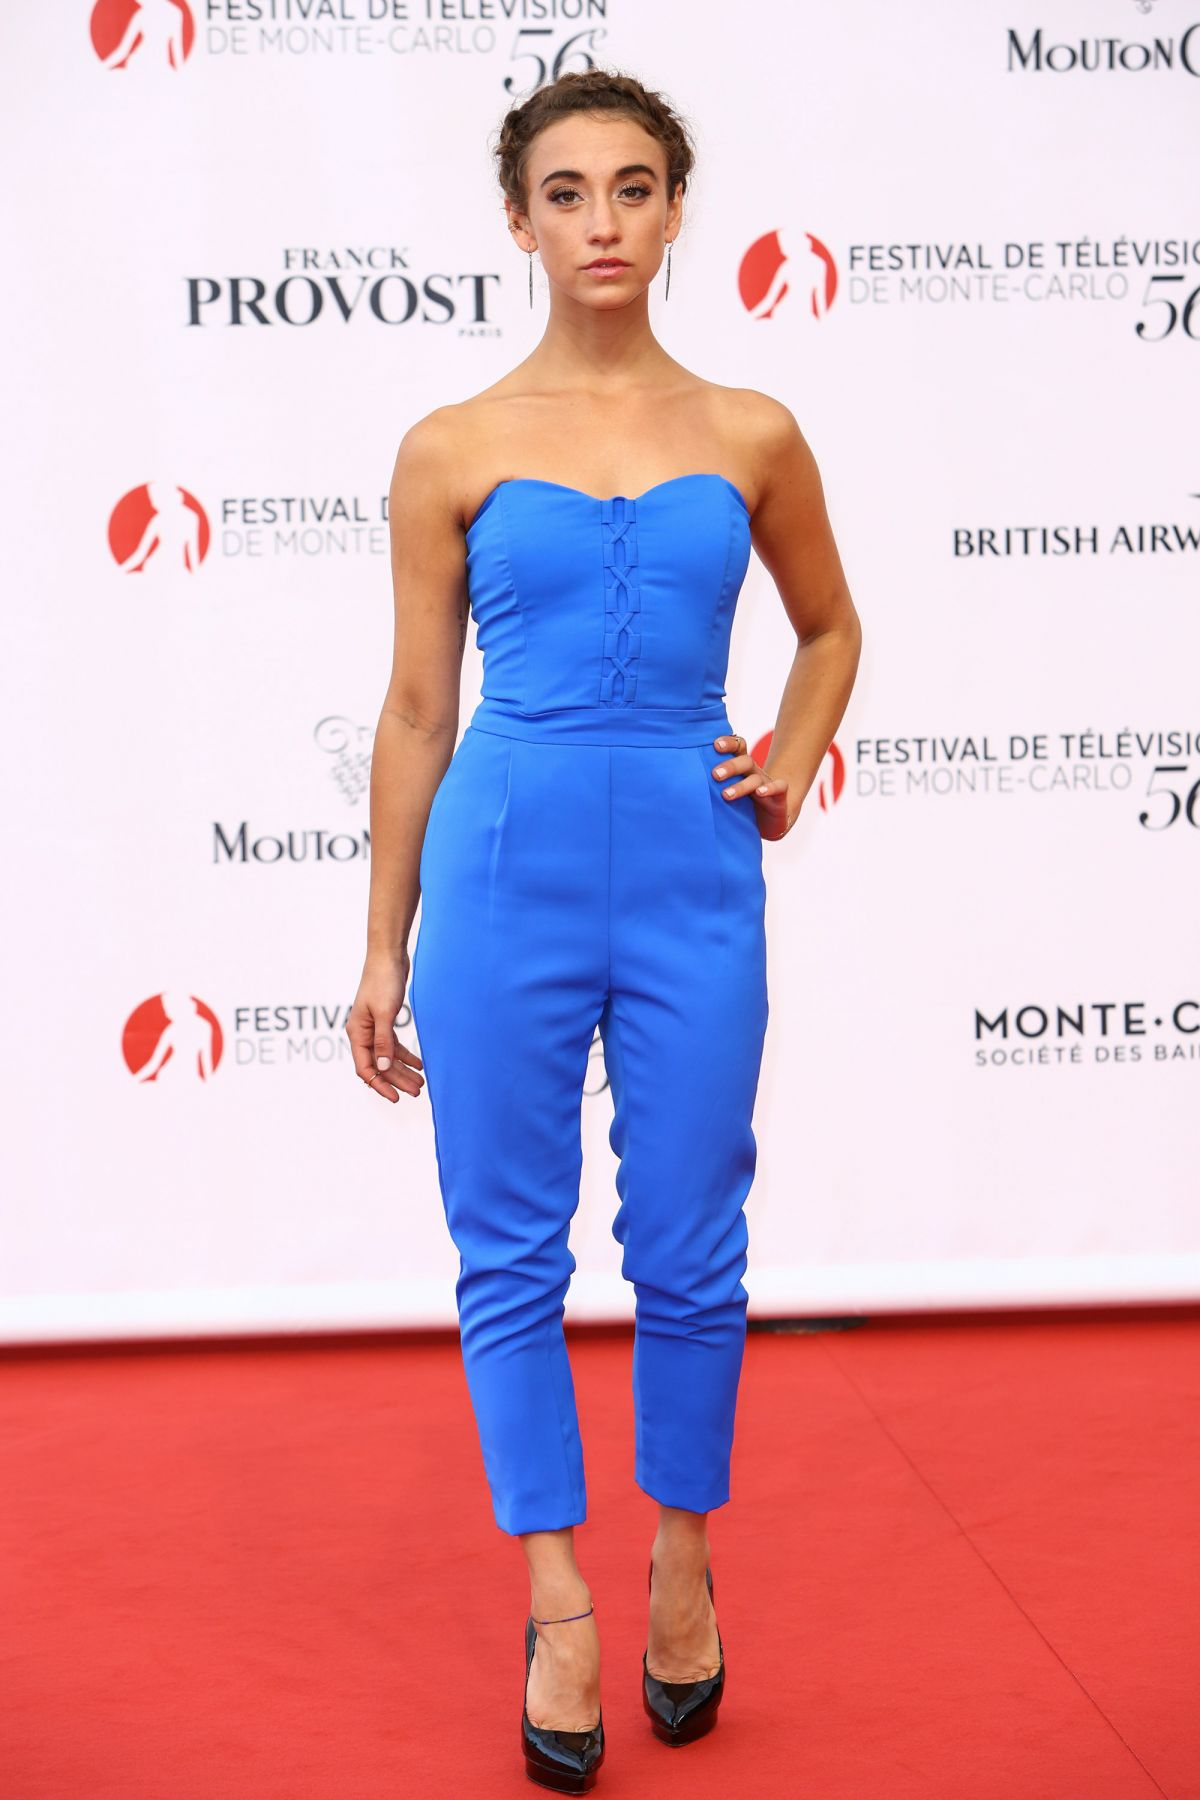 STELLA MAEVE at 56th Monte-Carlo Television Festival in Monaco 06/12/2016